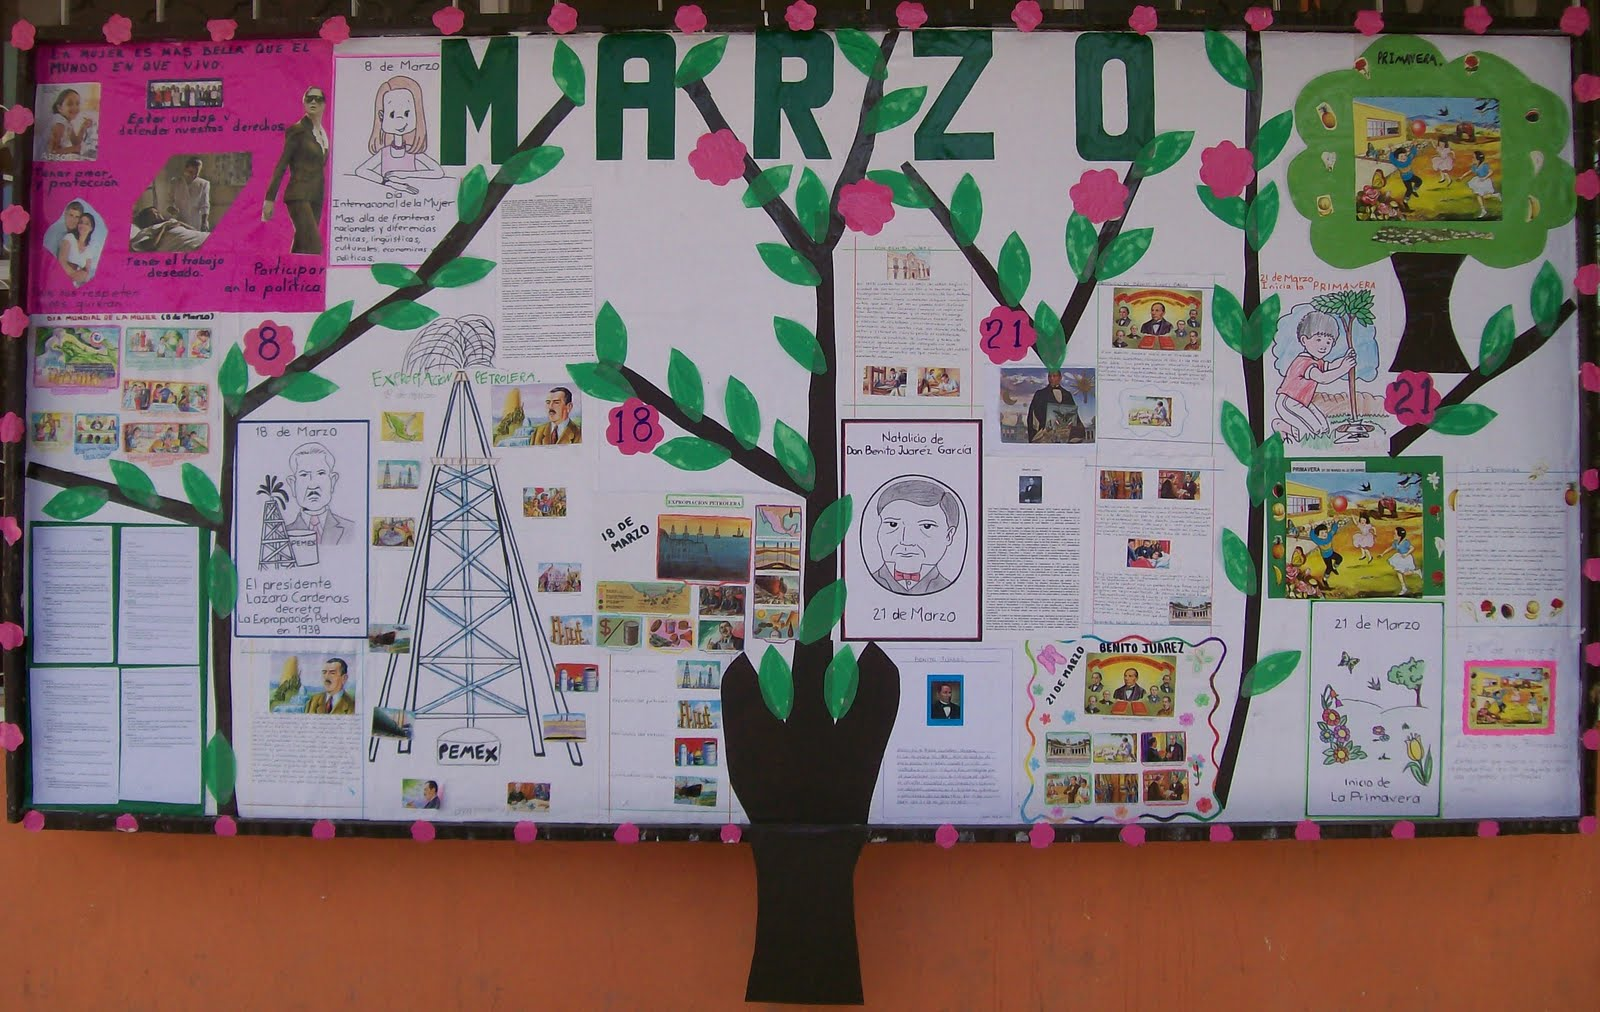 Peri dico mural marzo 8 imagenes educativas for Como decorar un mural